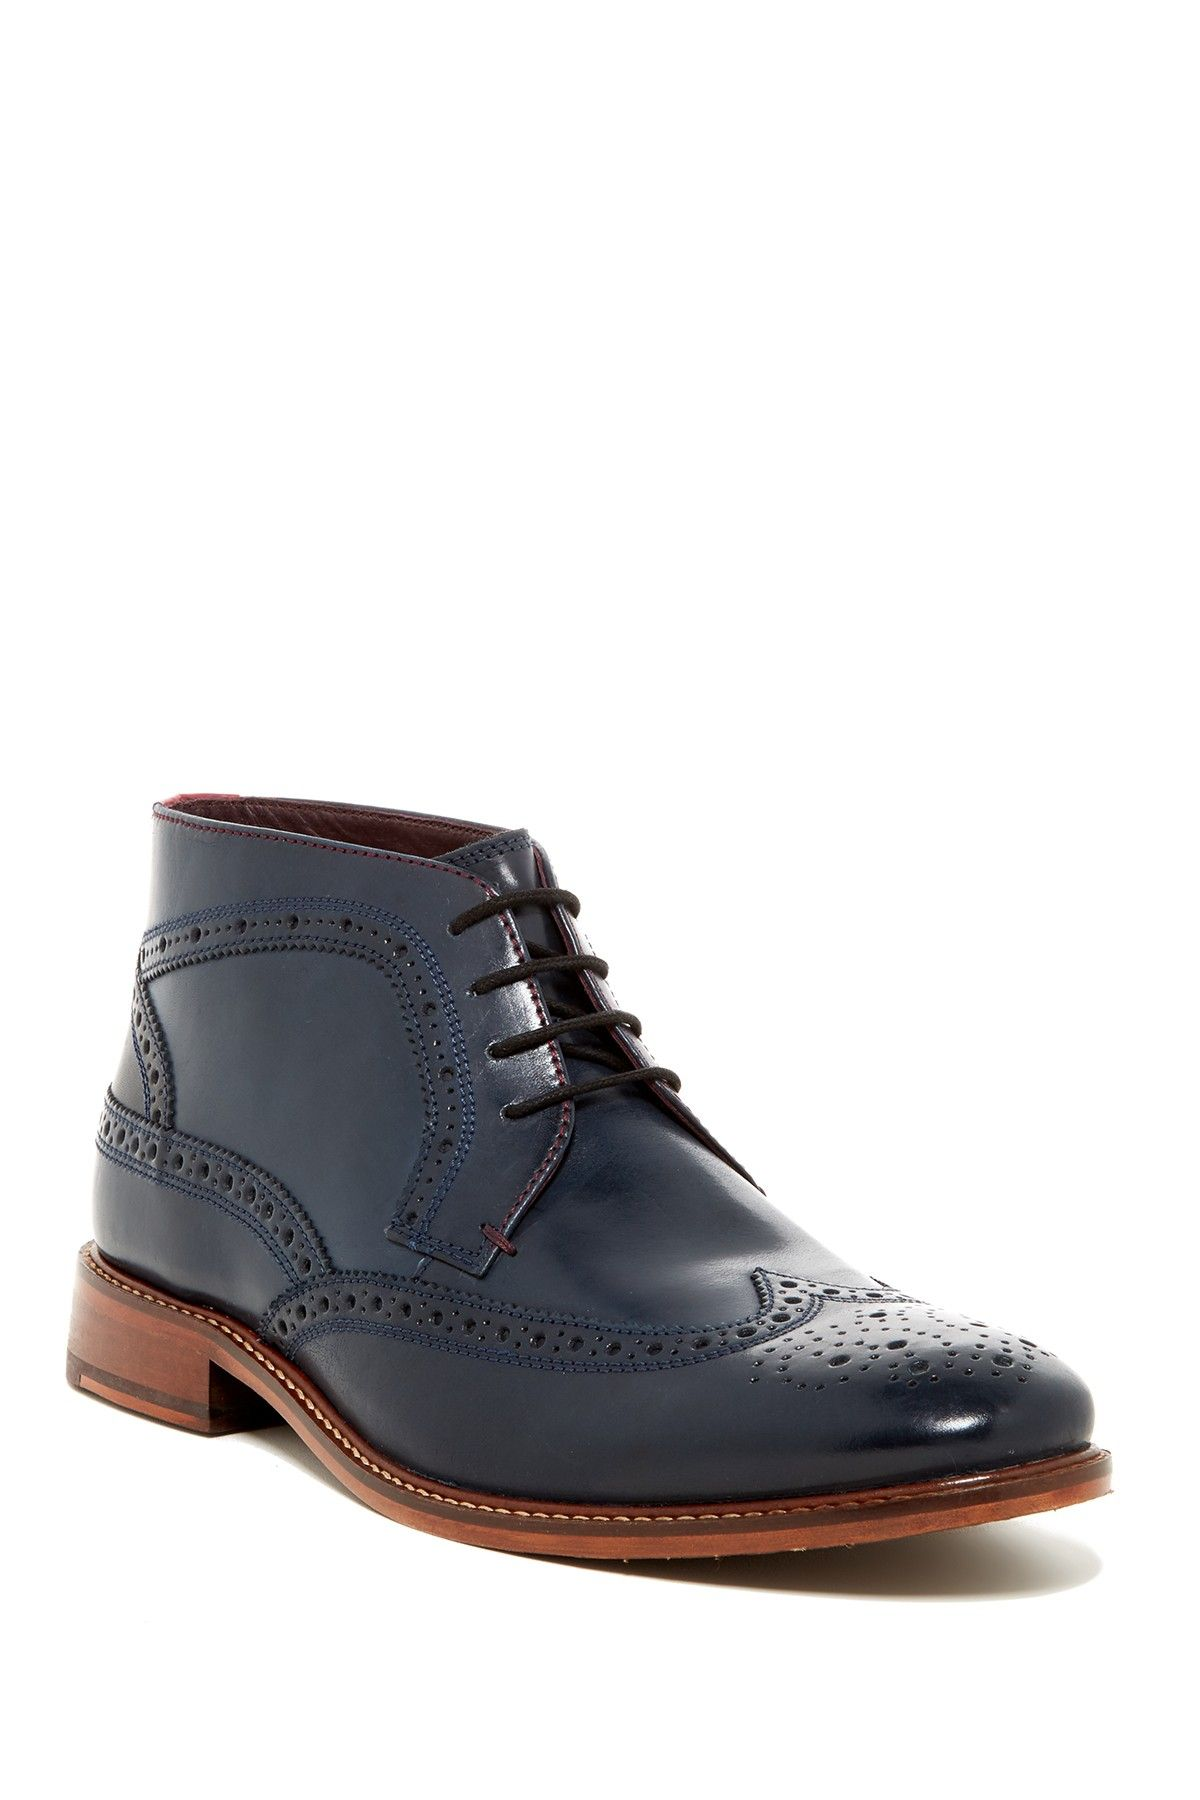 7a6245571e6 Pericop Wingtip Chukka Boot by Ted Baker London on  nordstrom rack  Gentleman Shoes